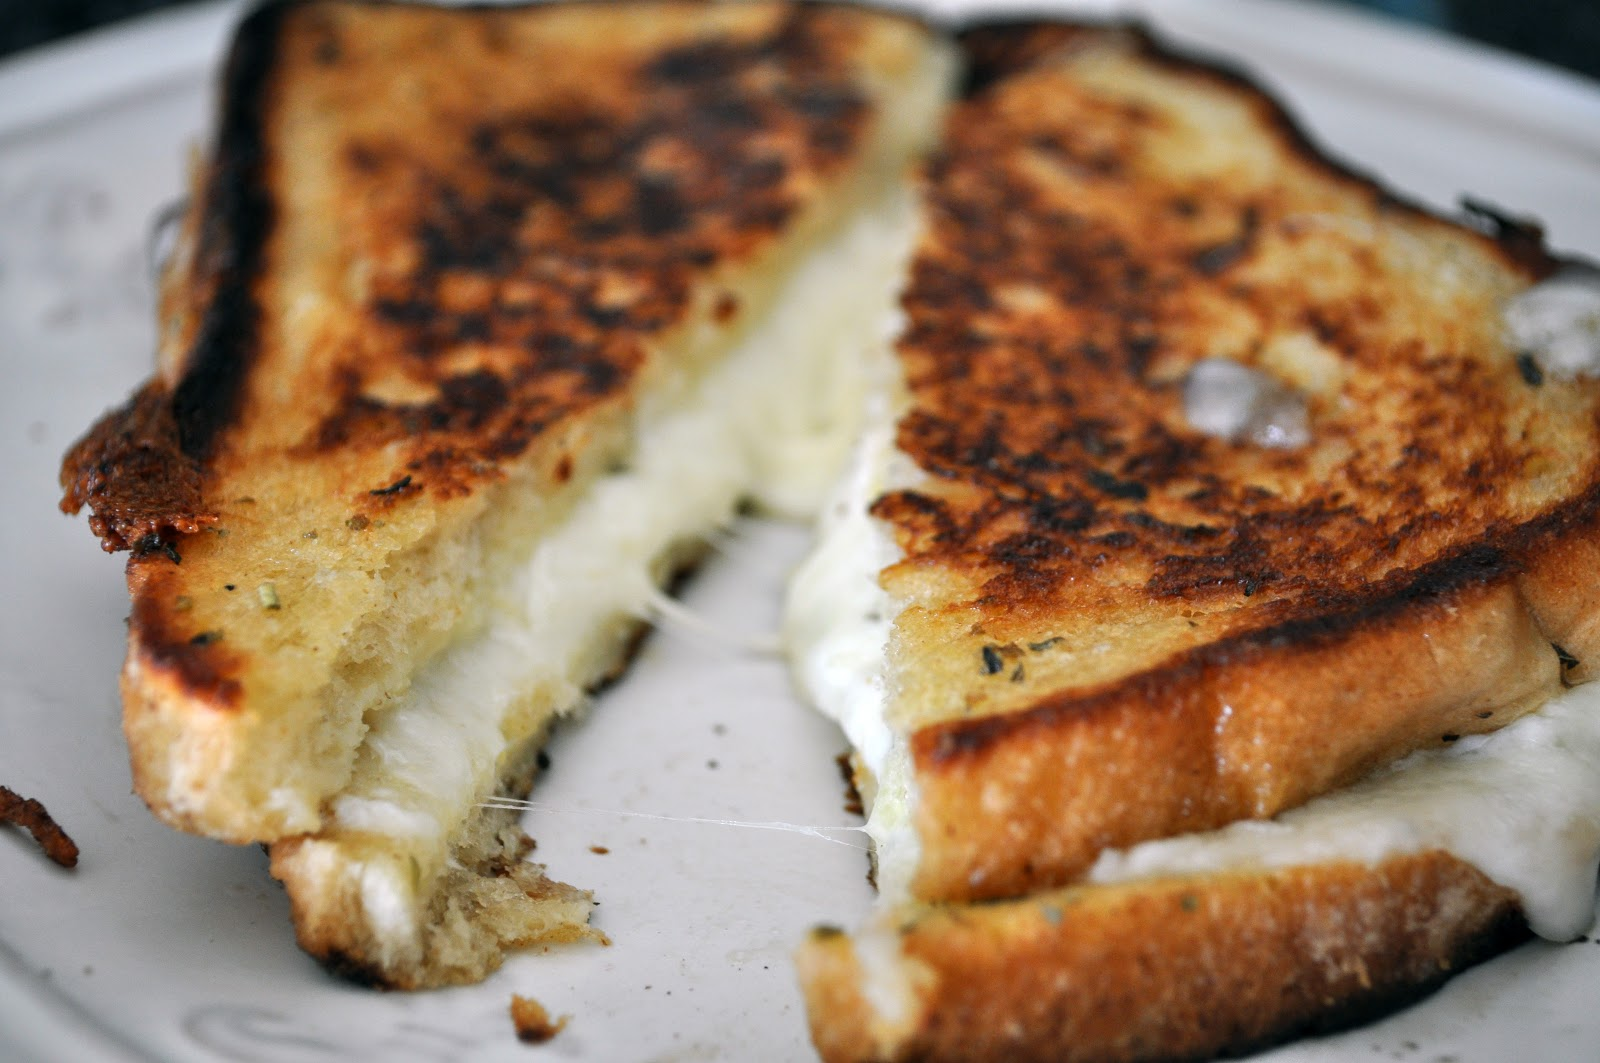 Grilled Mozzarella Sandwich | All Kinds of Yumm